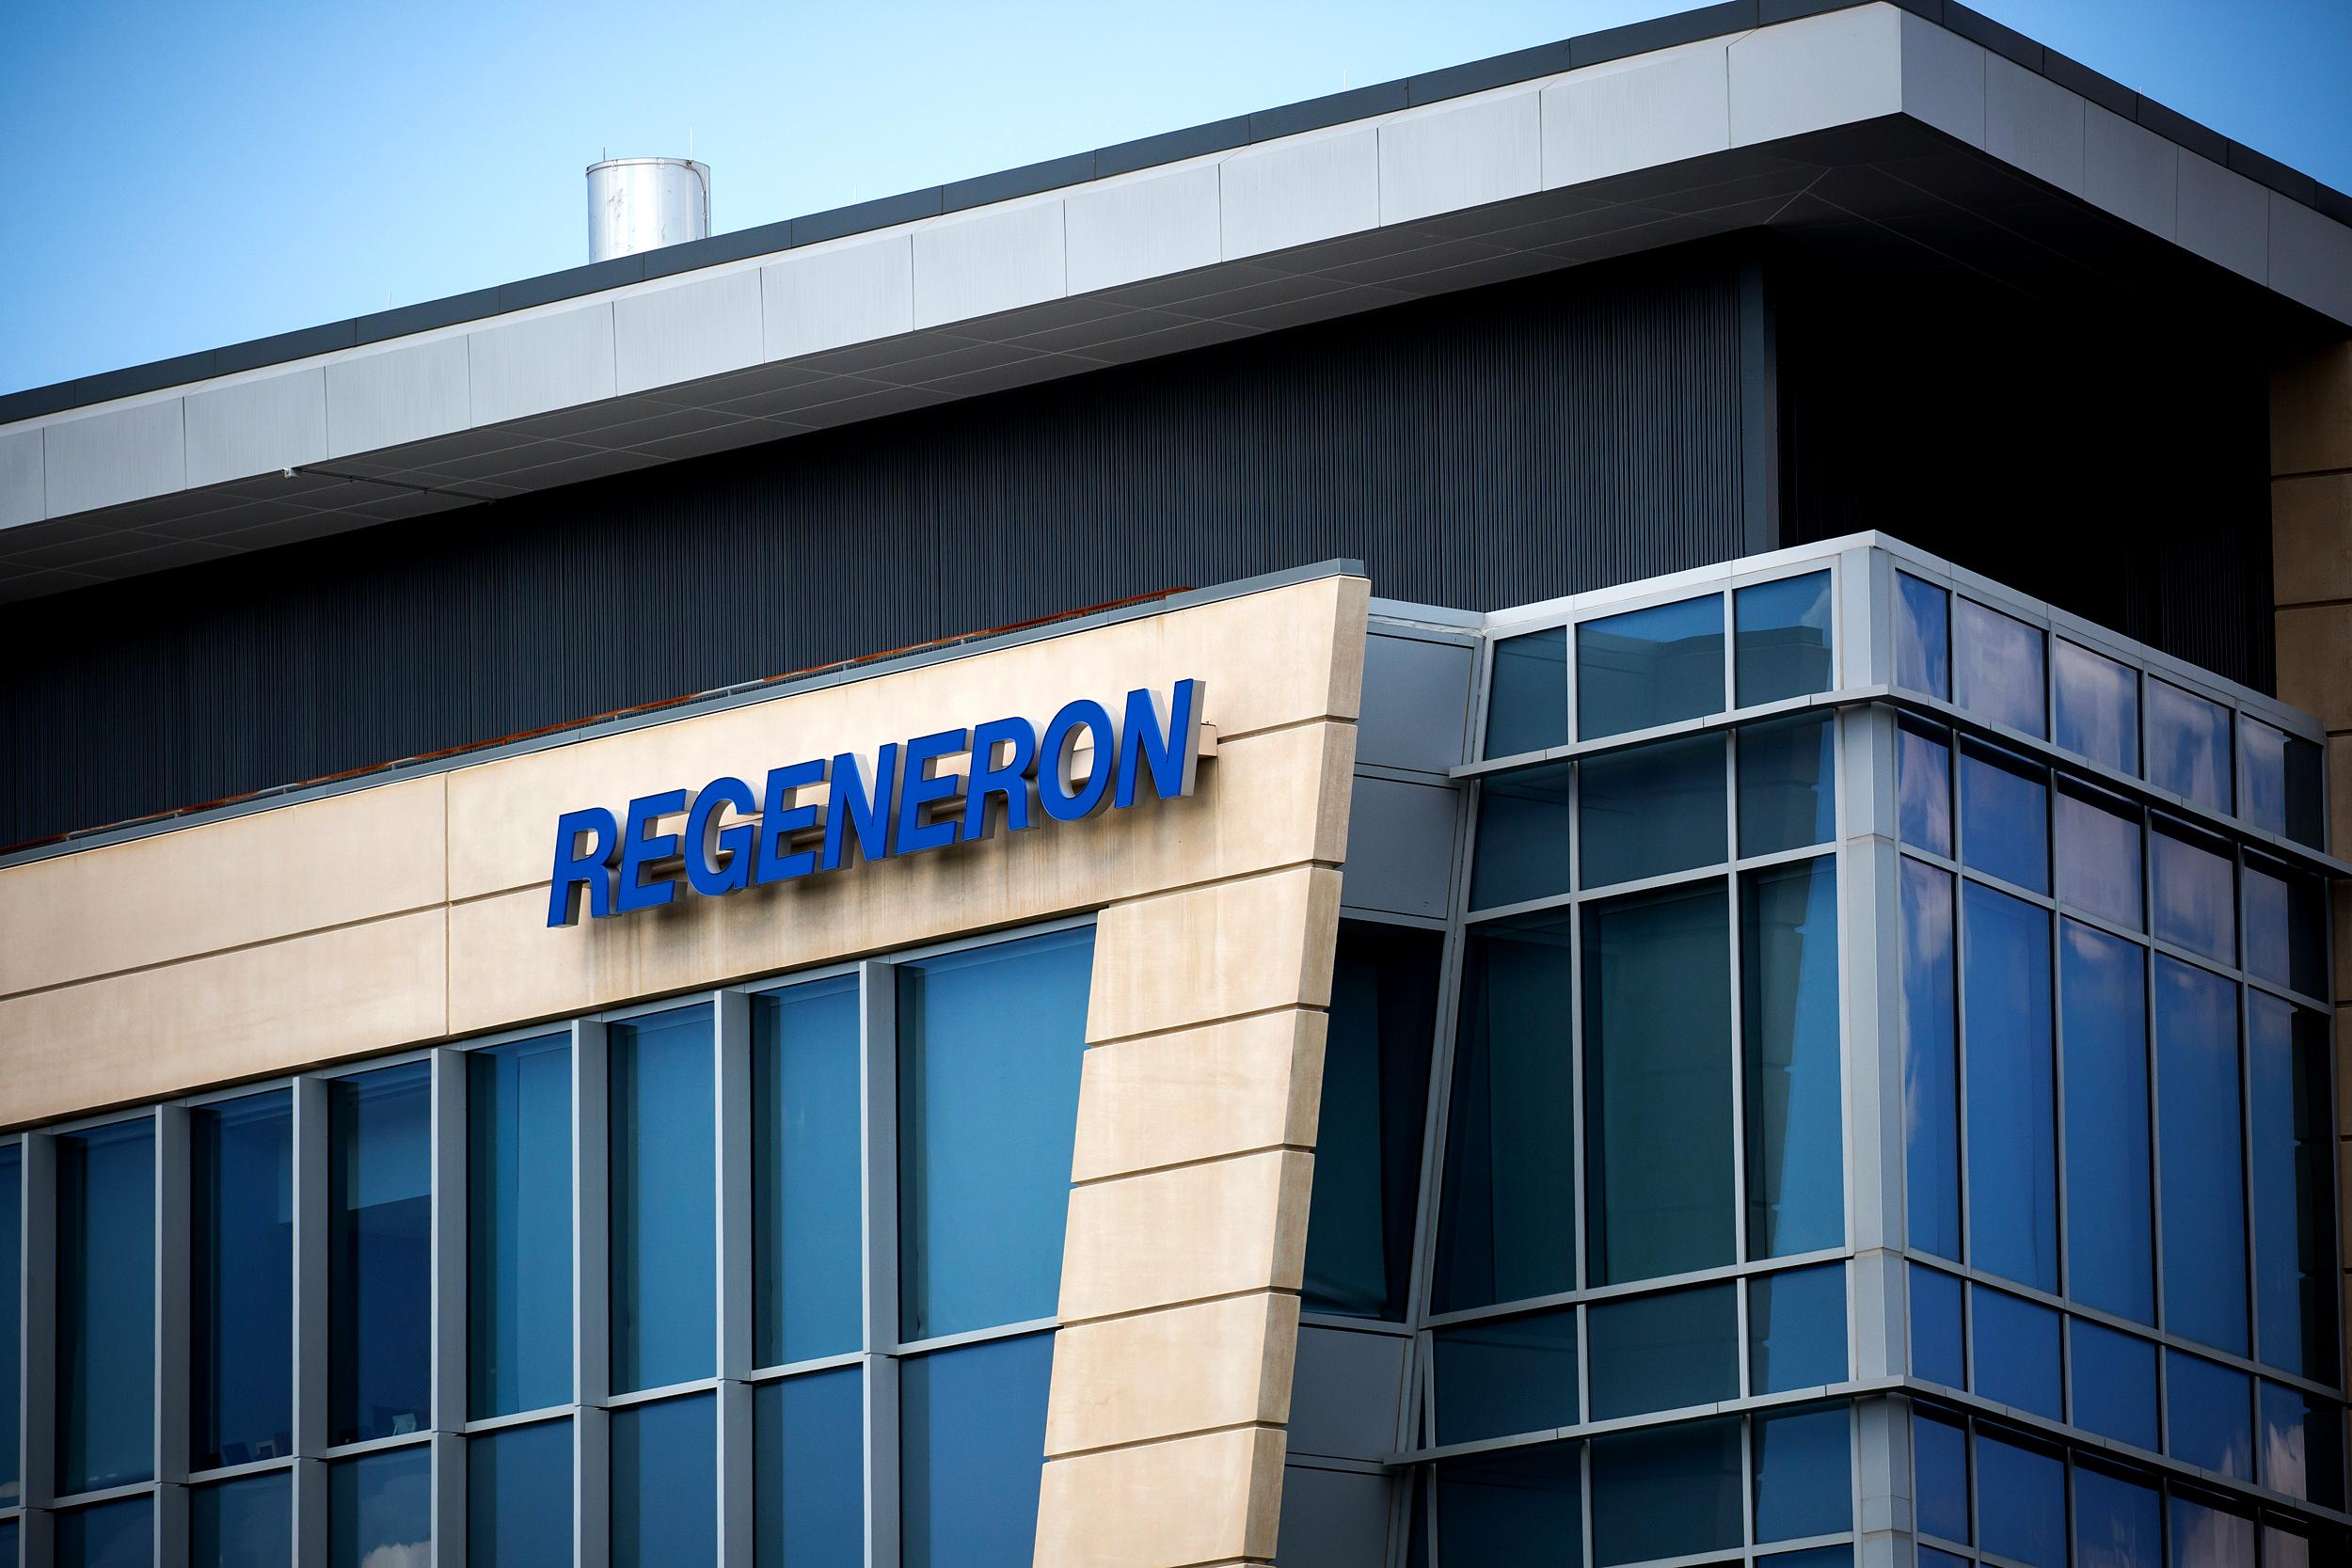 Regeneron board member and executive sell $1 million in stock after Trump touts treatment